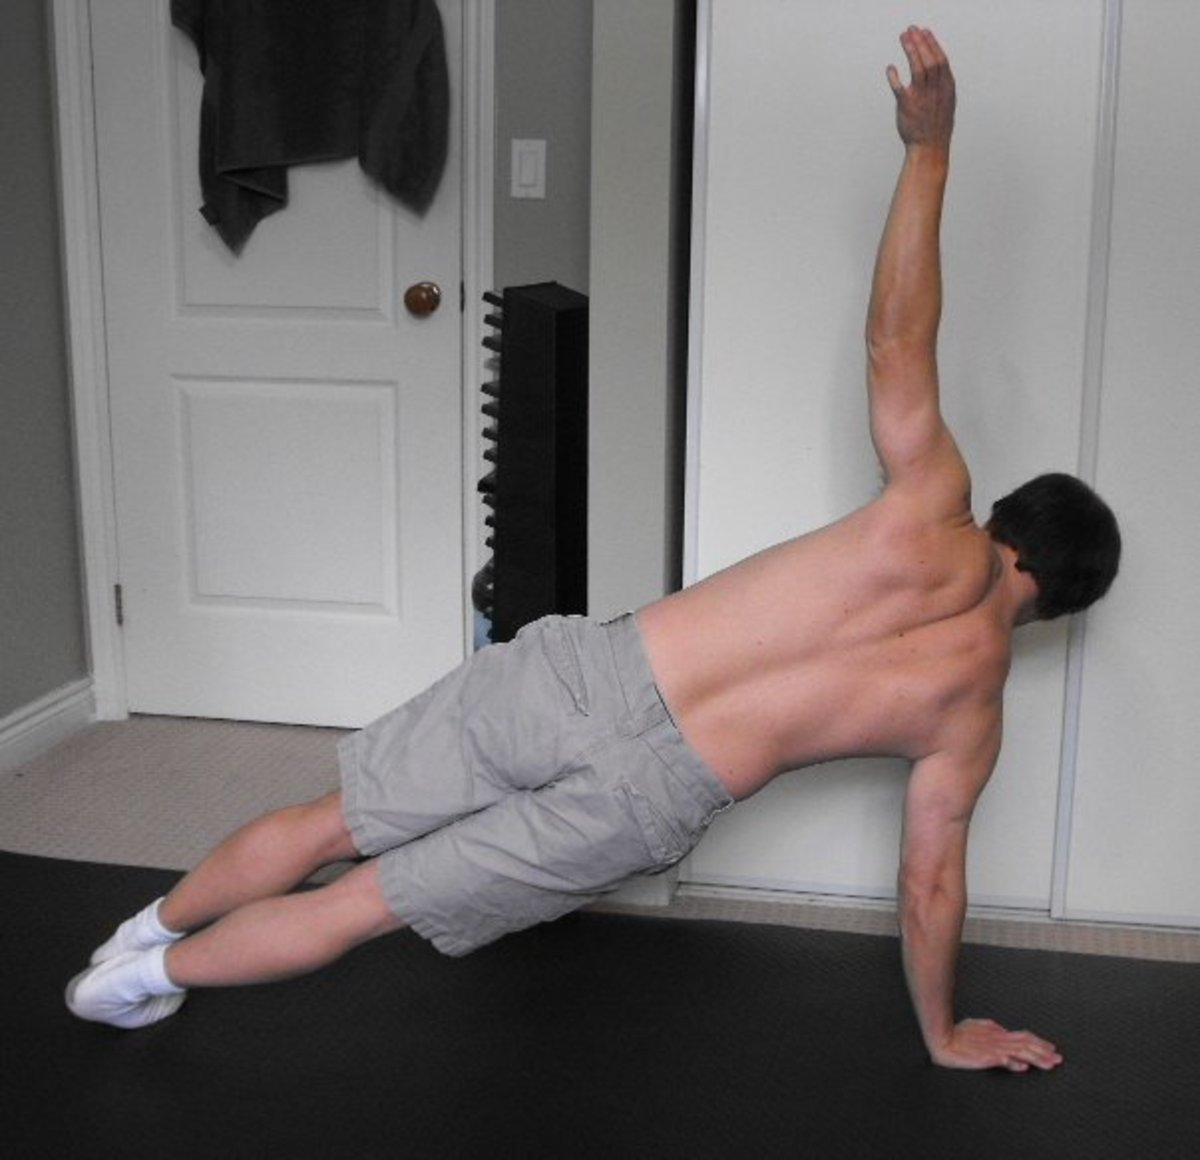 Toning Exercises: Tone Up Your Body For More Muscle Definition